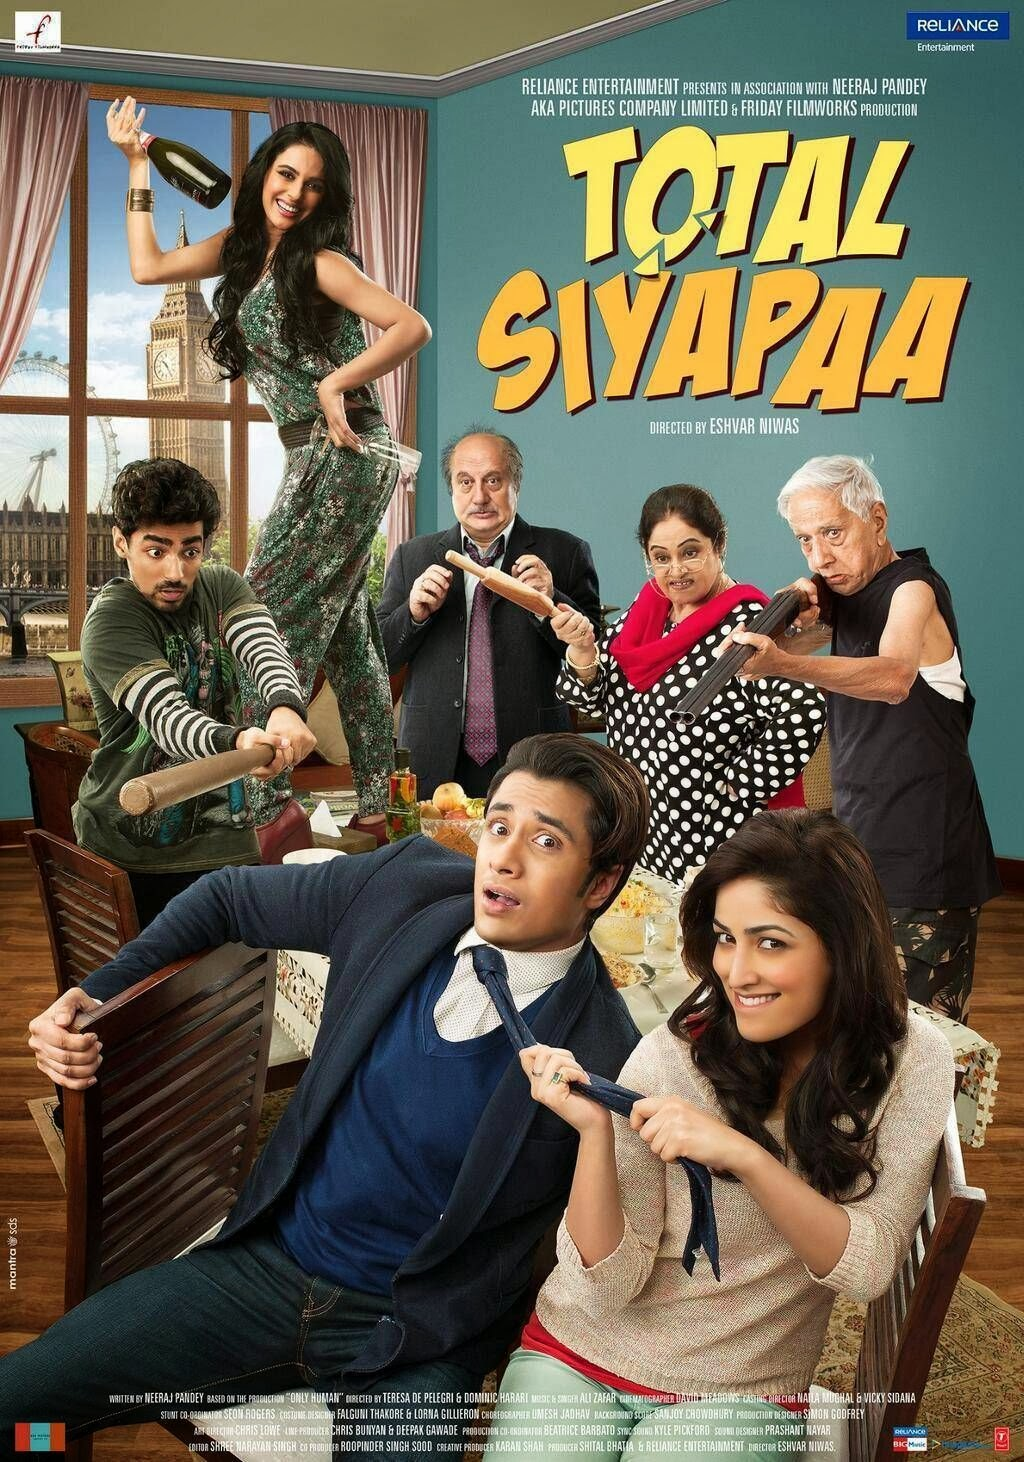 Total Siyapaa (2014) Mp3 Songs Free Download